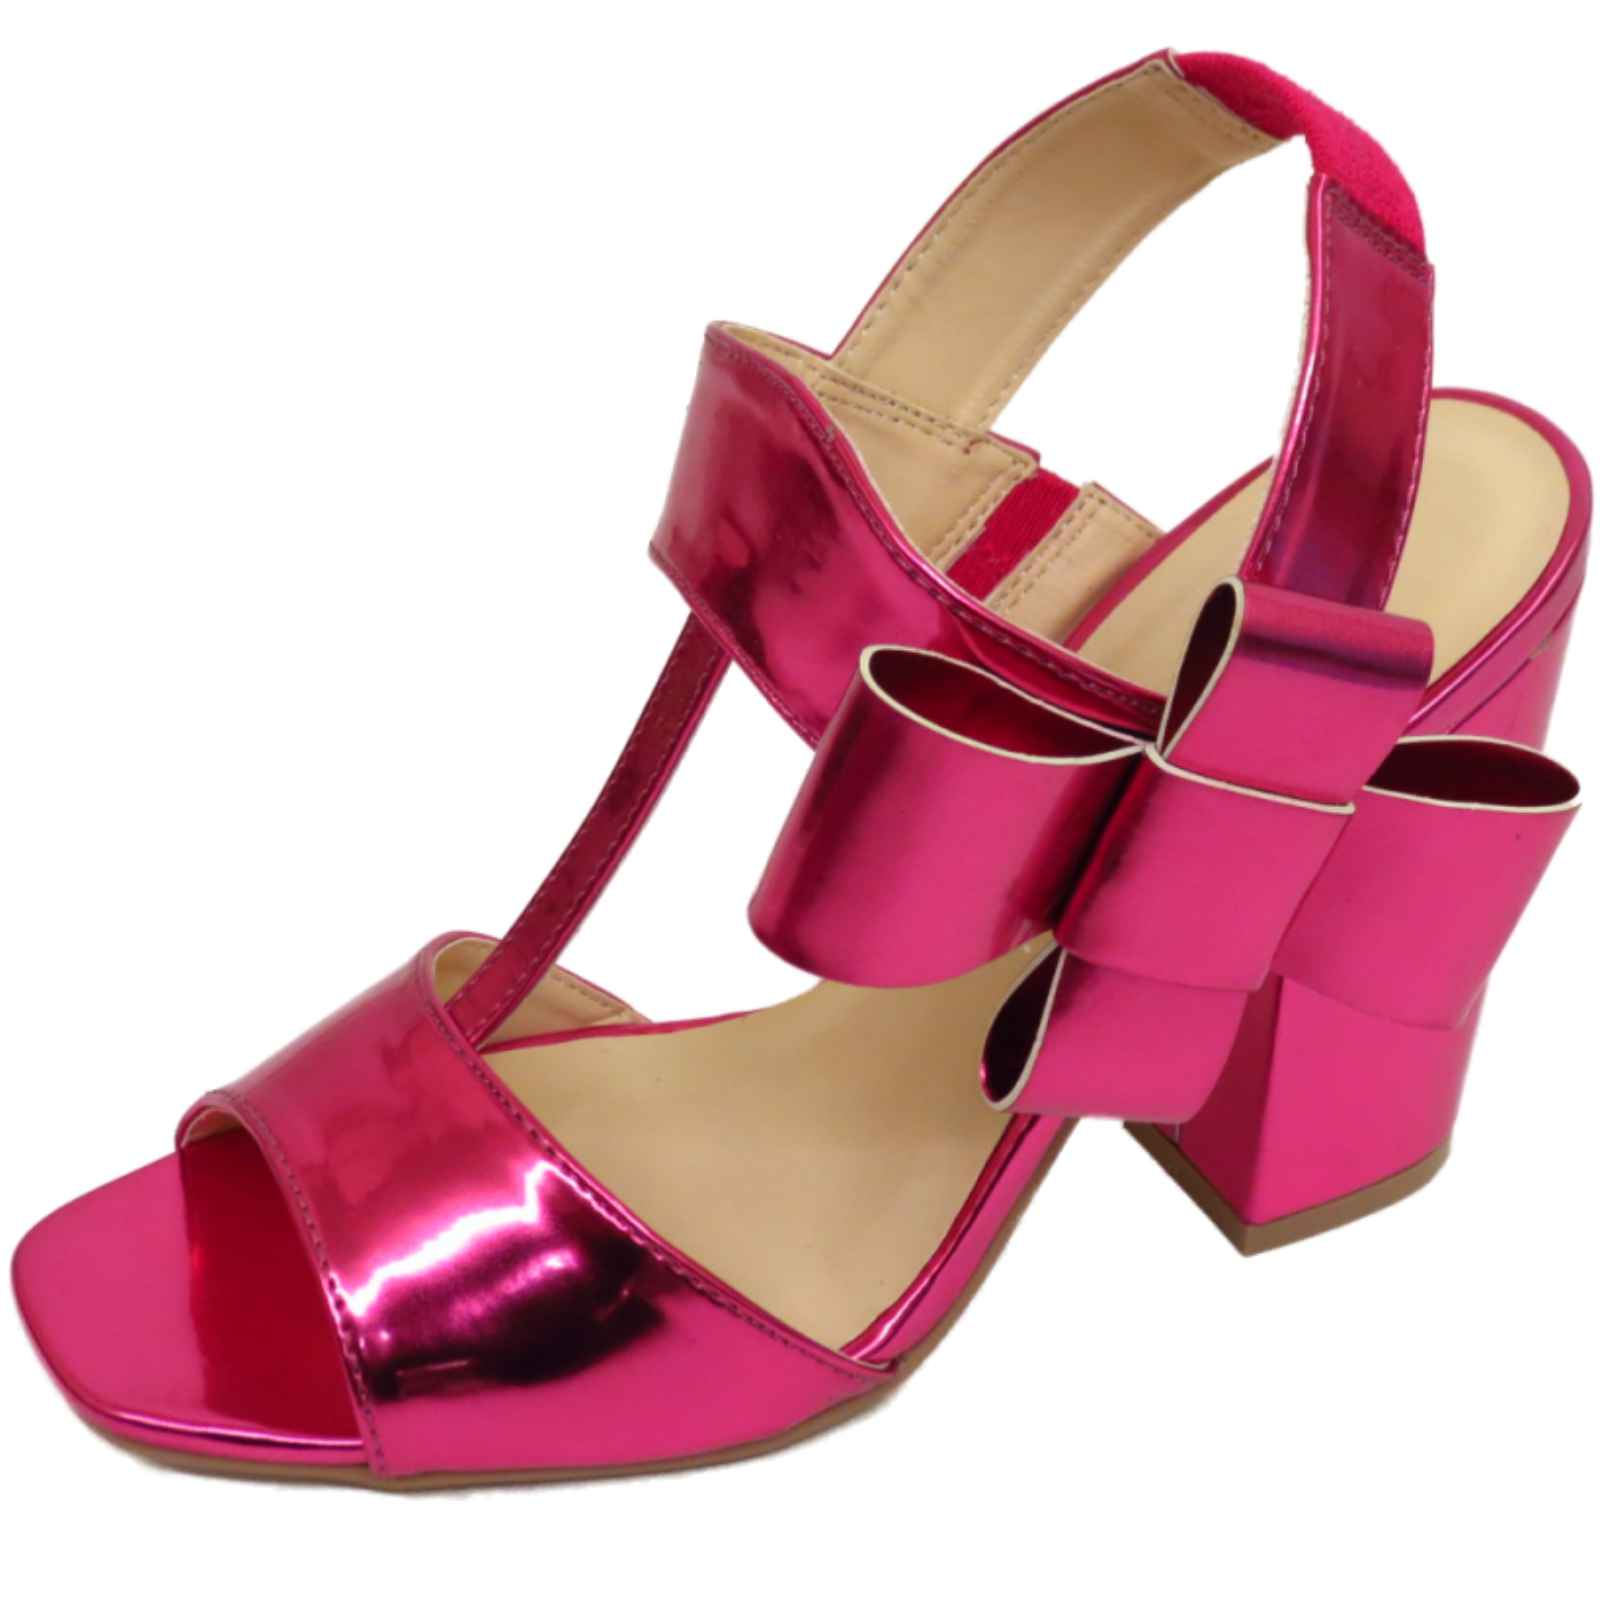 Dolcis Block Heel Shoes